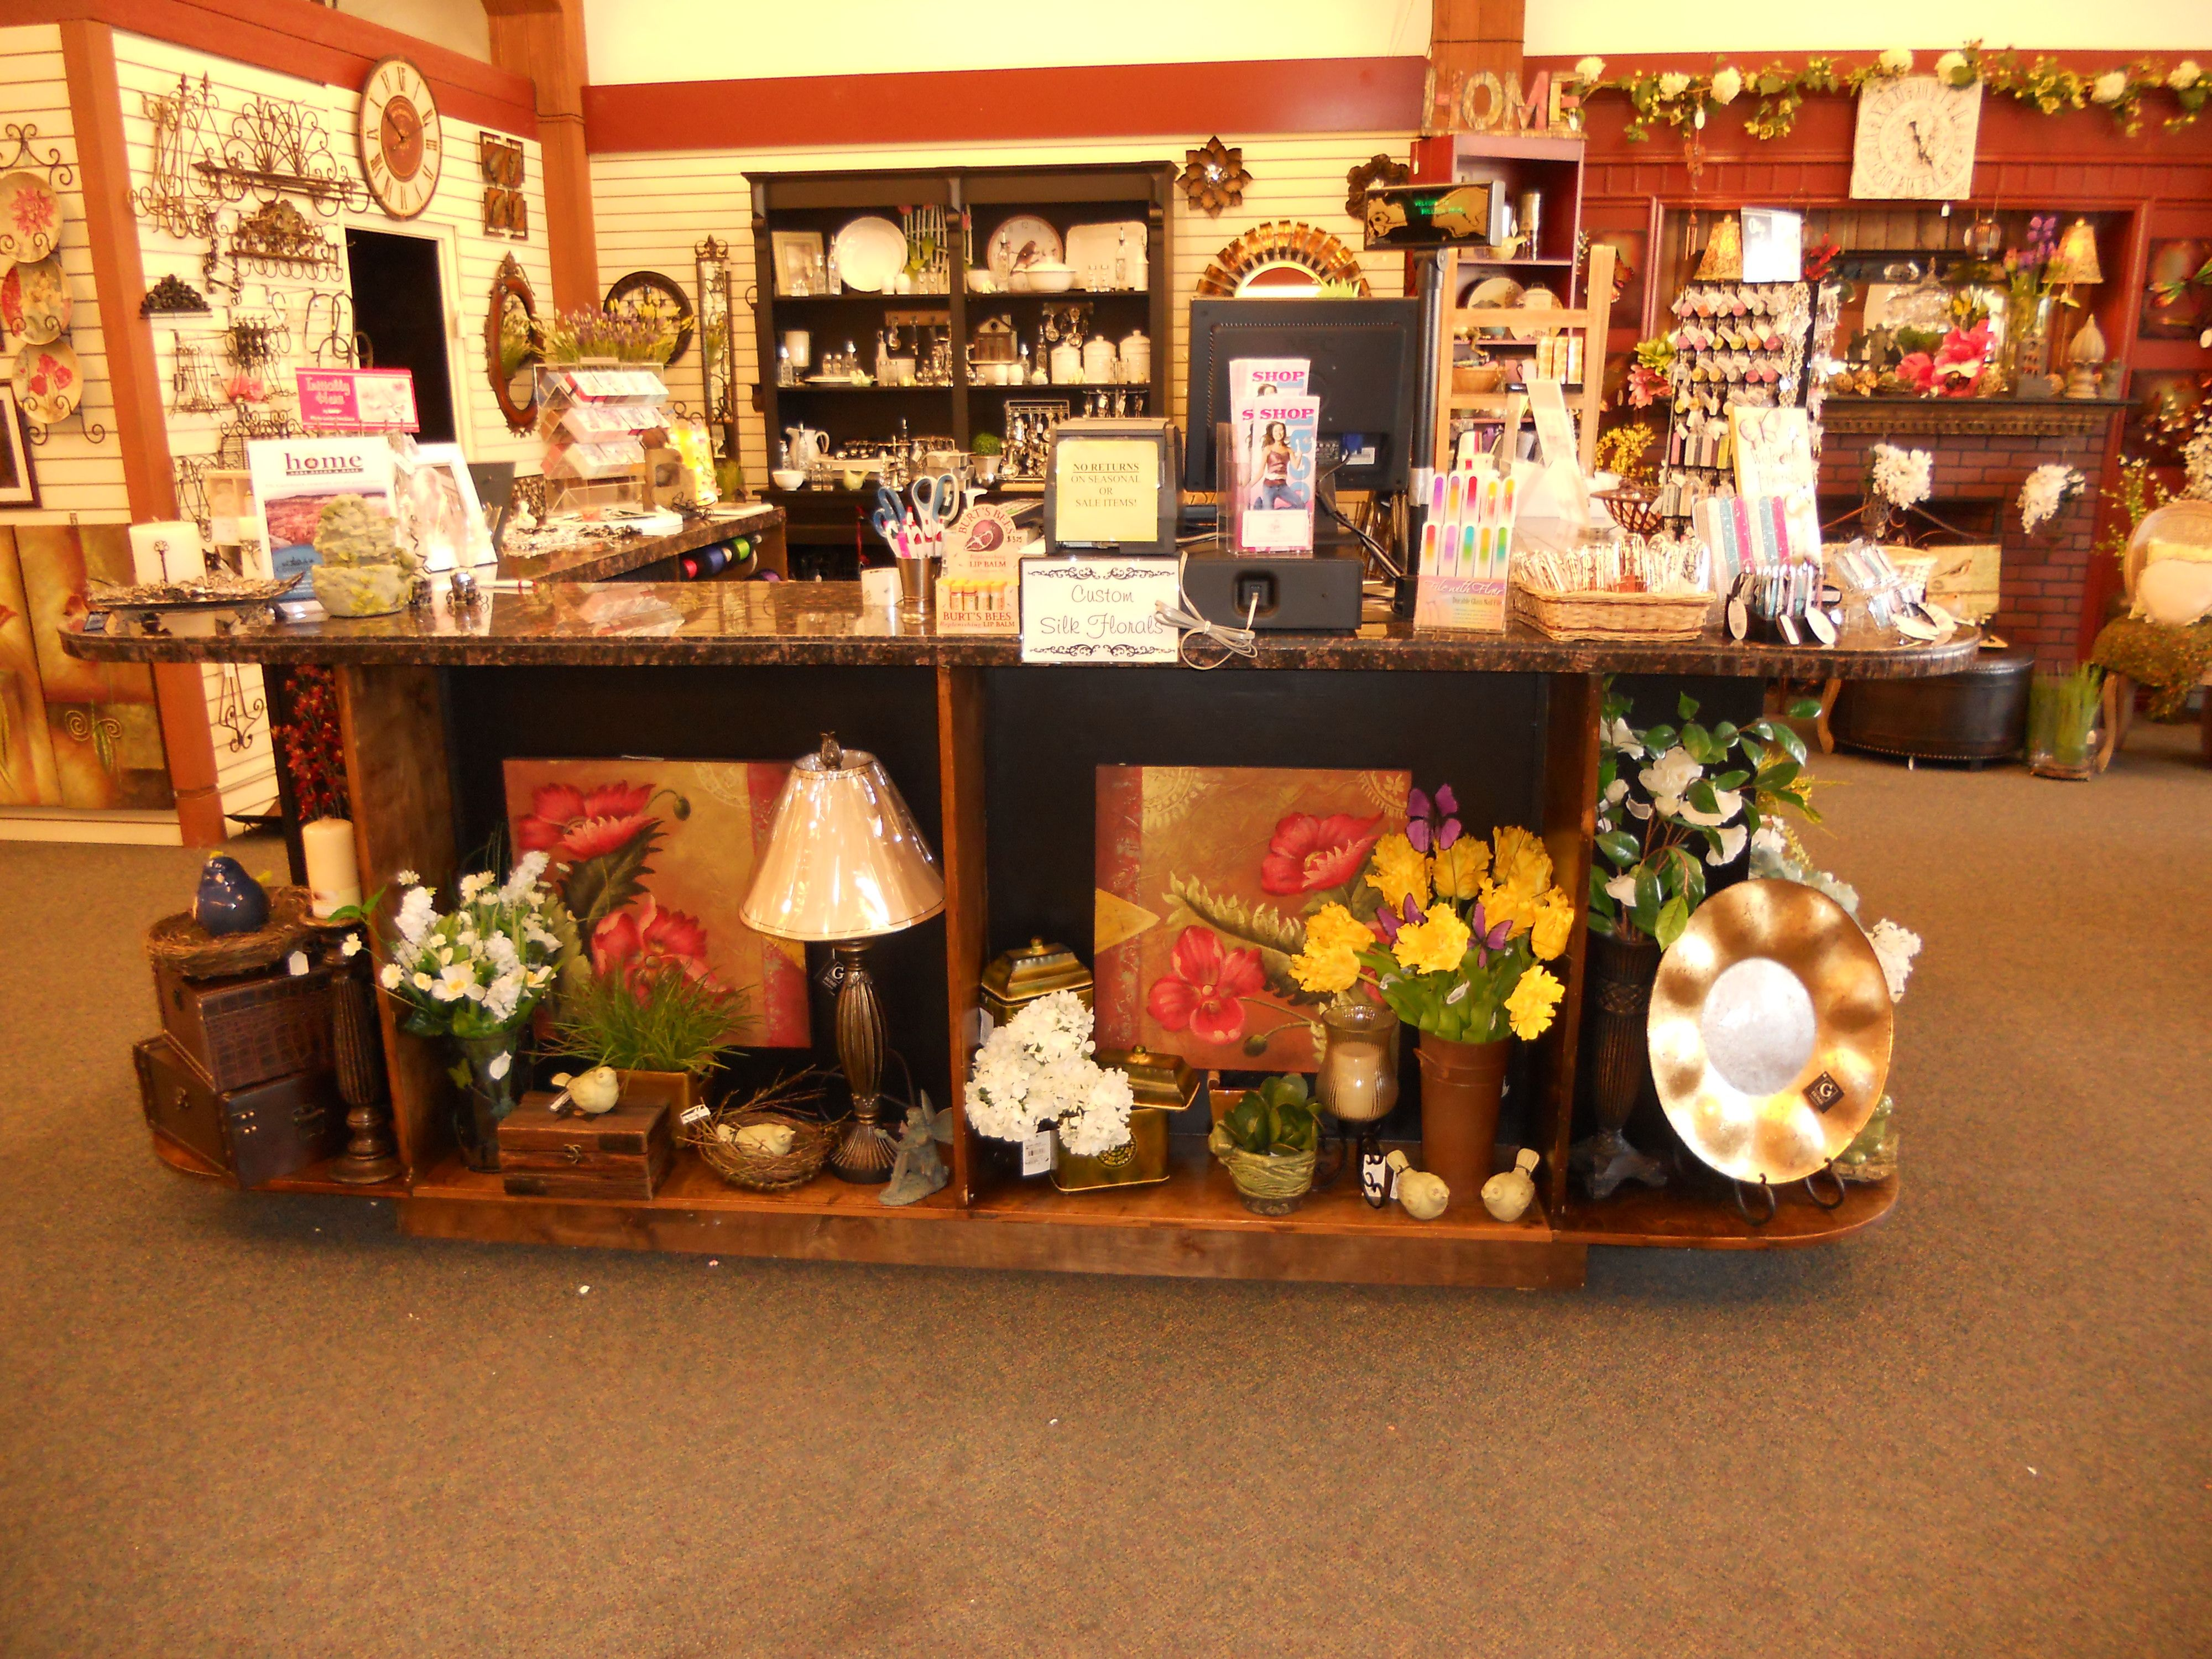 Retail Store Display Ideas Check Out Counter With Display Area On The Base